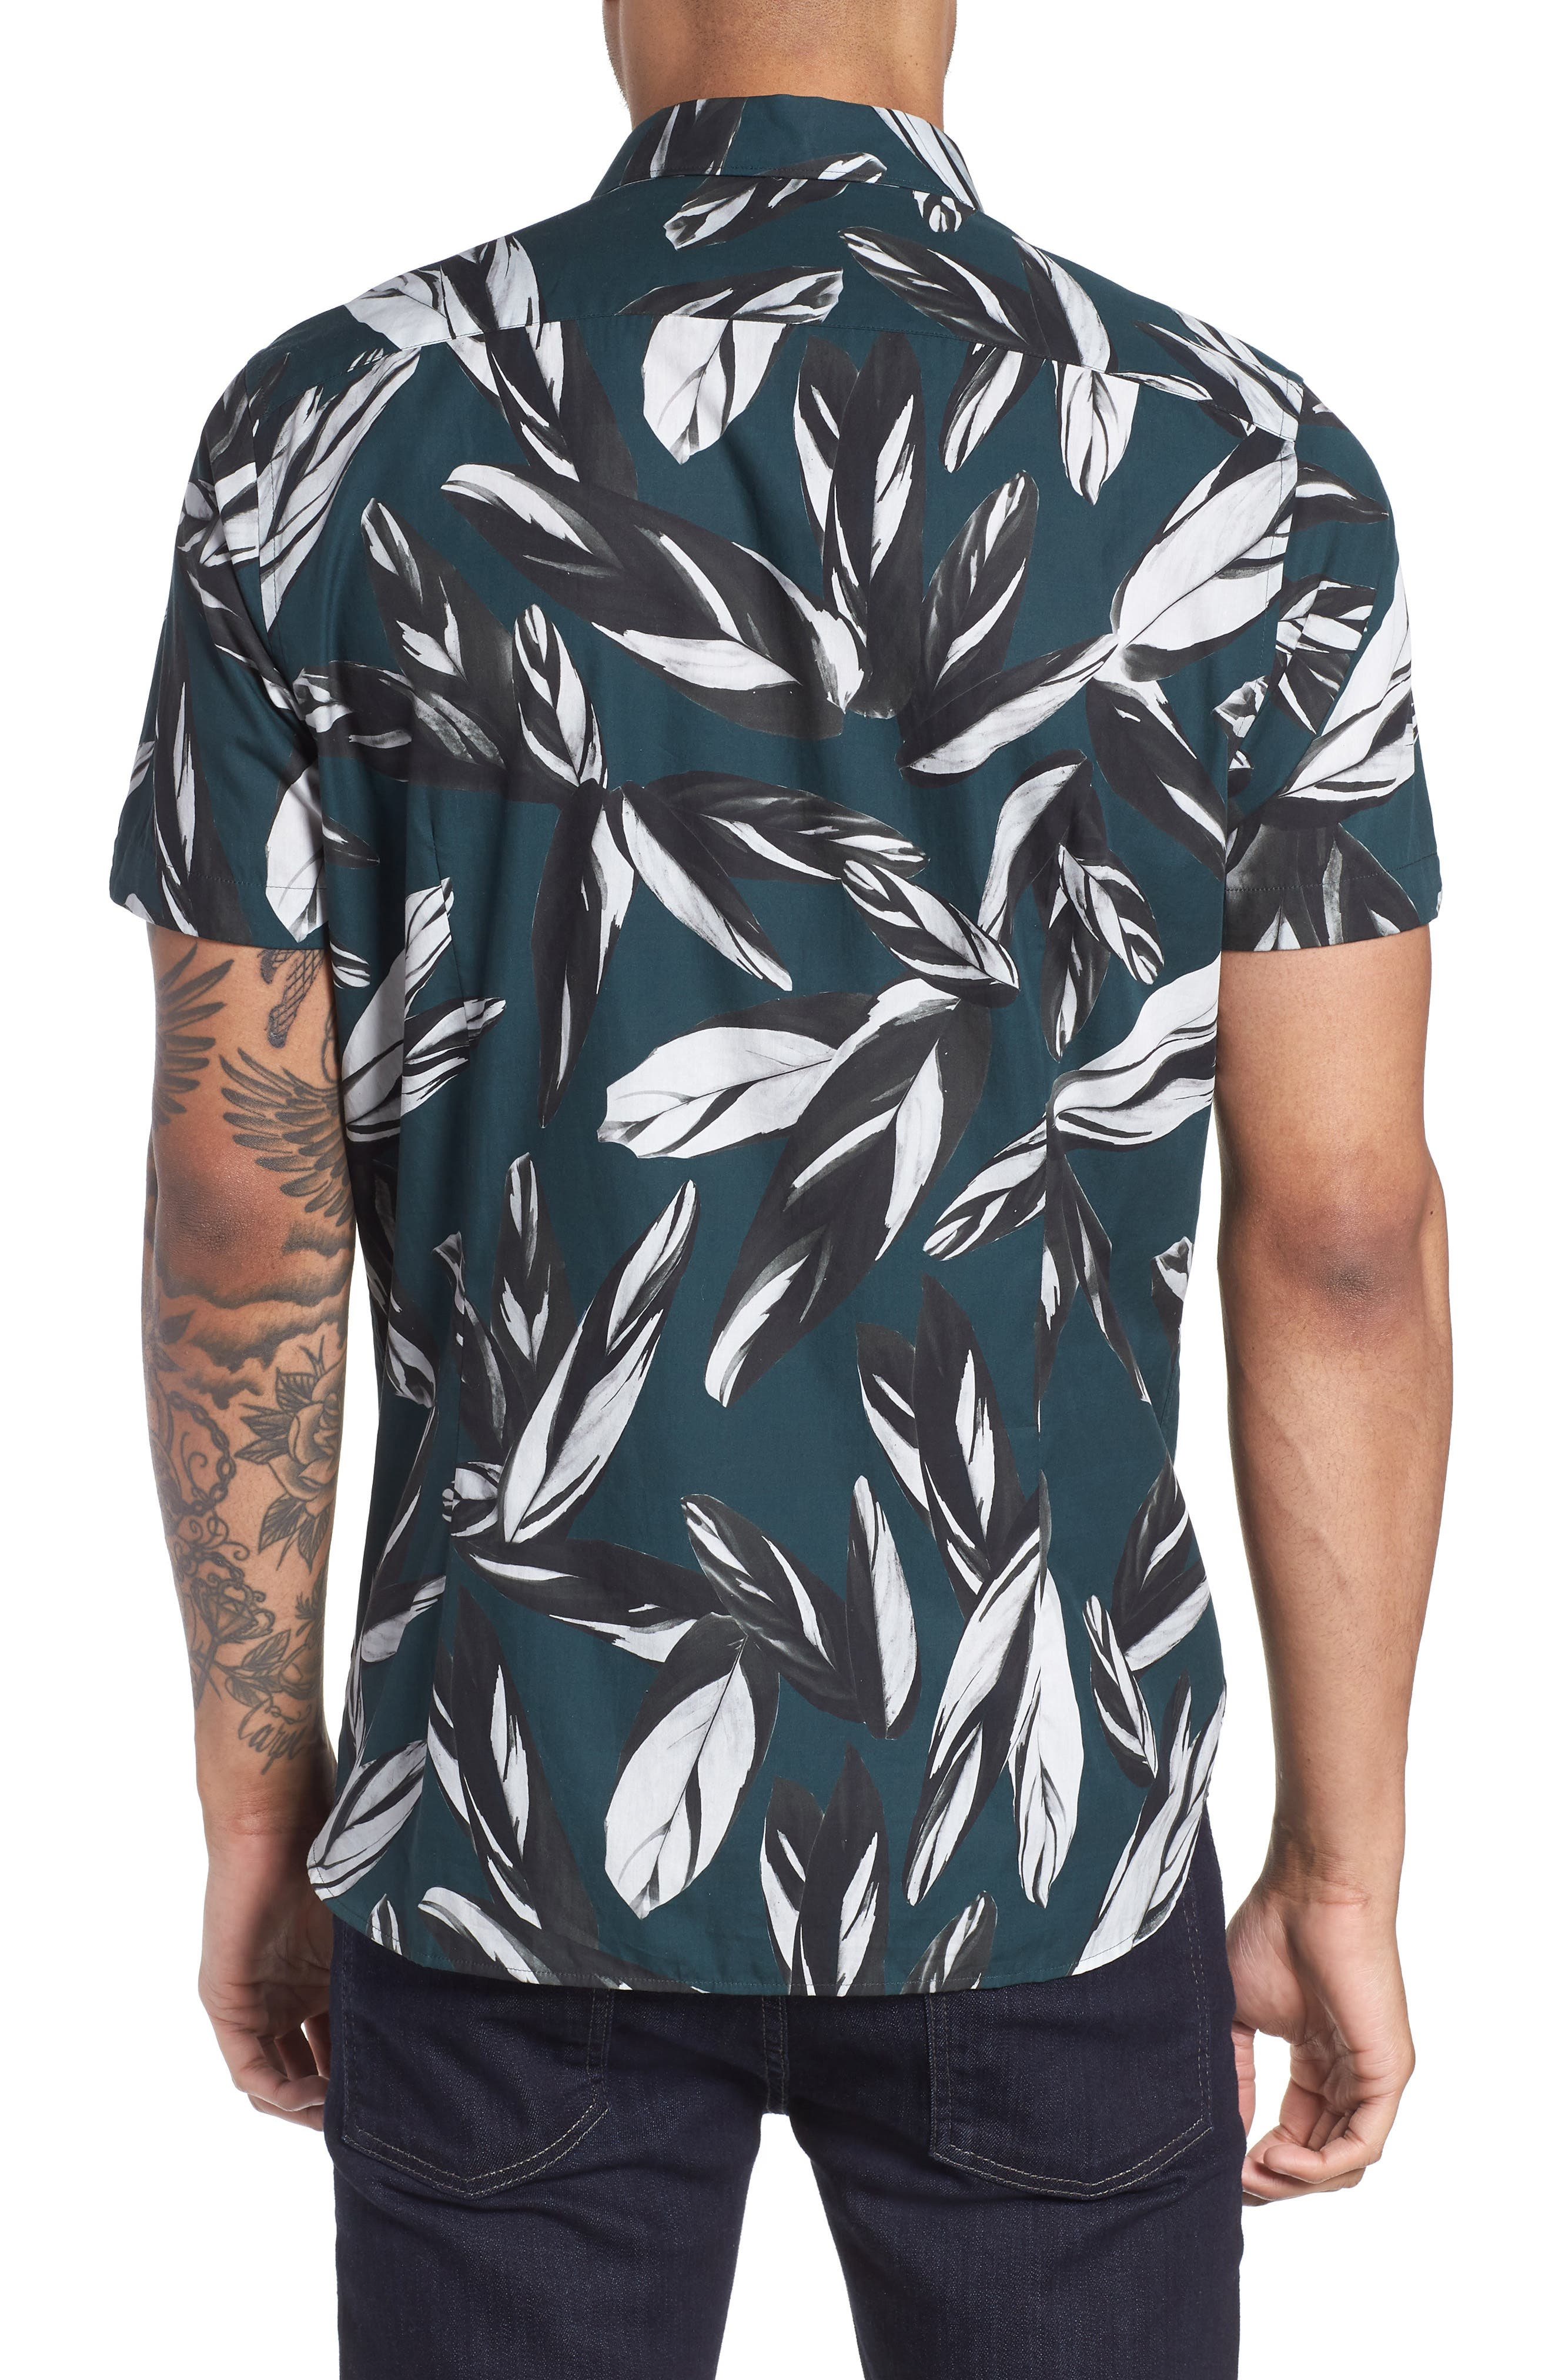 Parrot Print Short Sleeve Sport Shirt,                             Alternate thumbnail 3, color,                             Dark Green